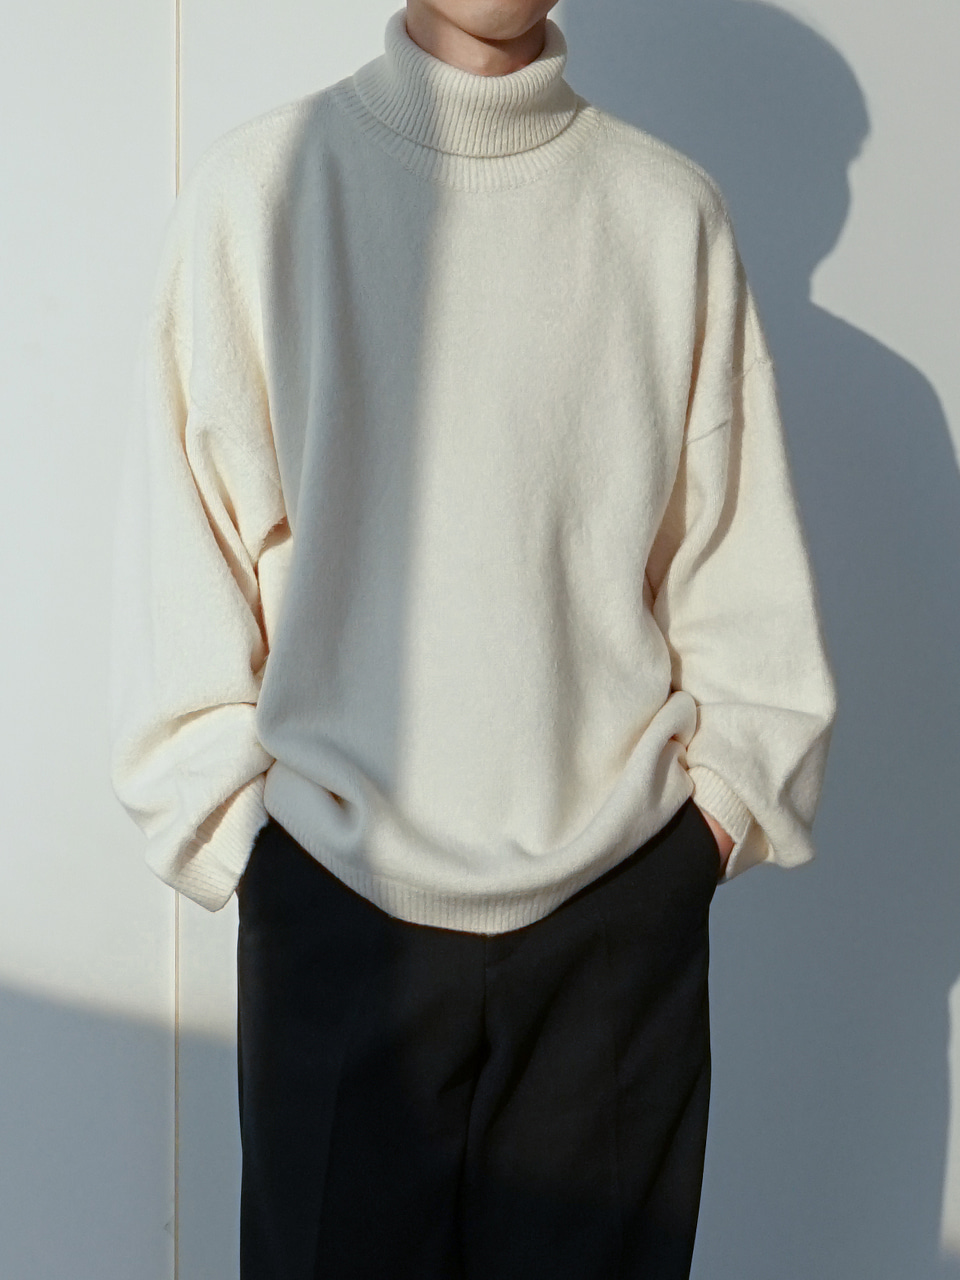 Klines Oversized Turtleneck Knit (6color)